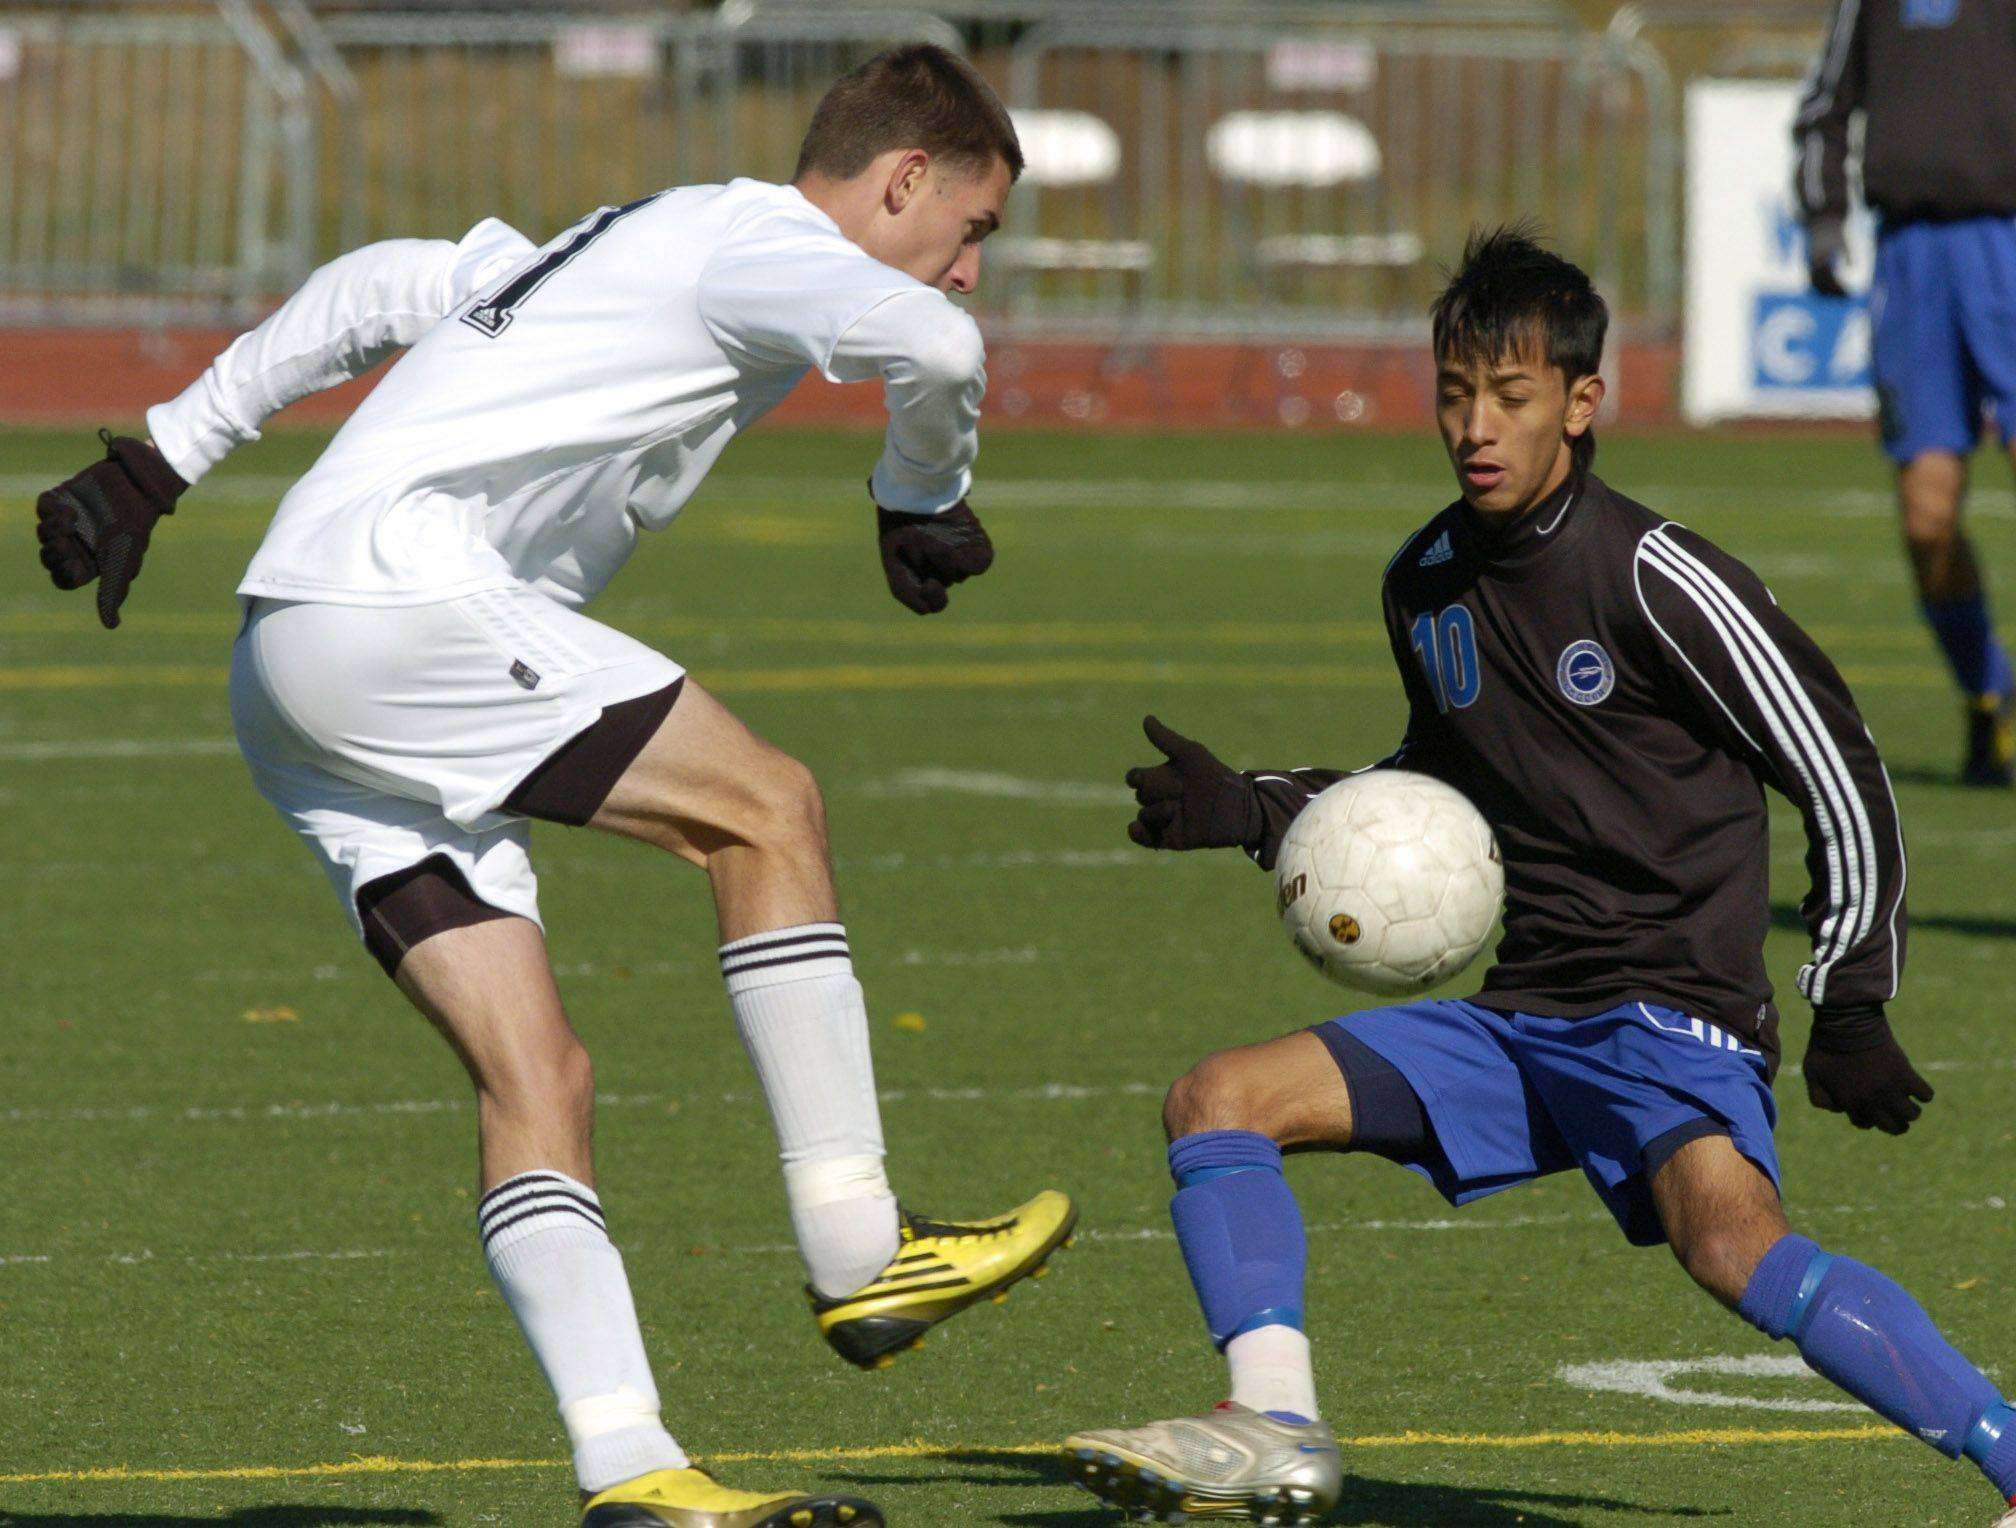 Ridgewood's Irvin Grepo kicks the ball past Burlington Central's Alexis Camarena.